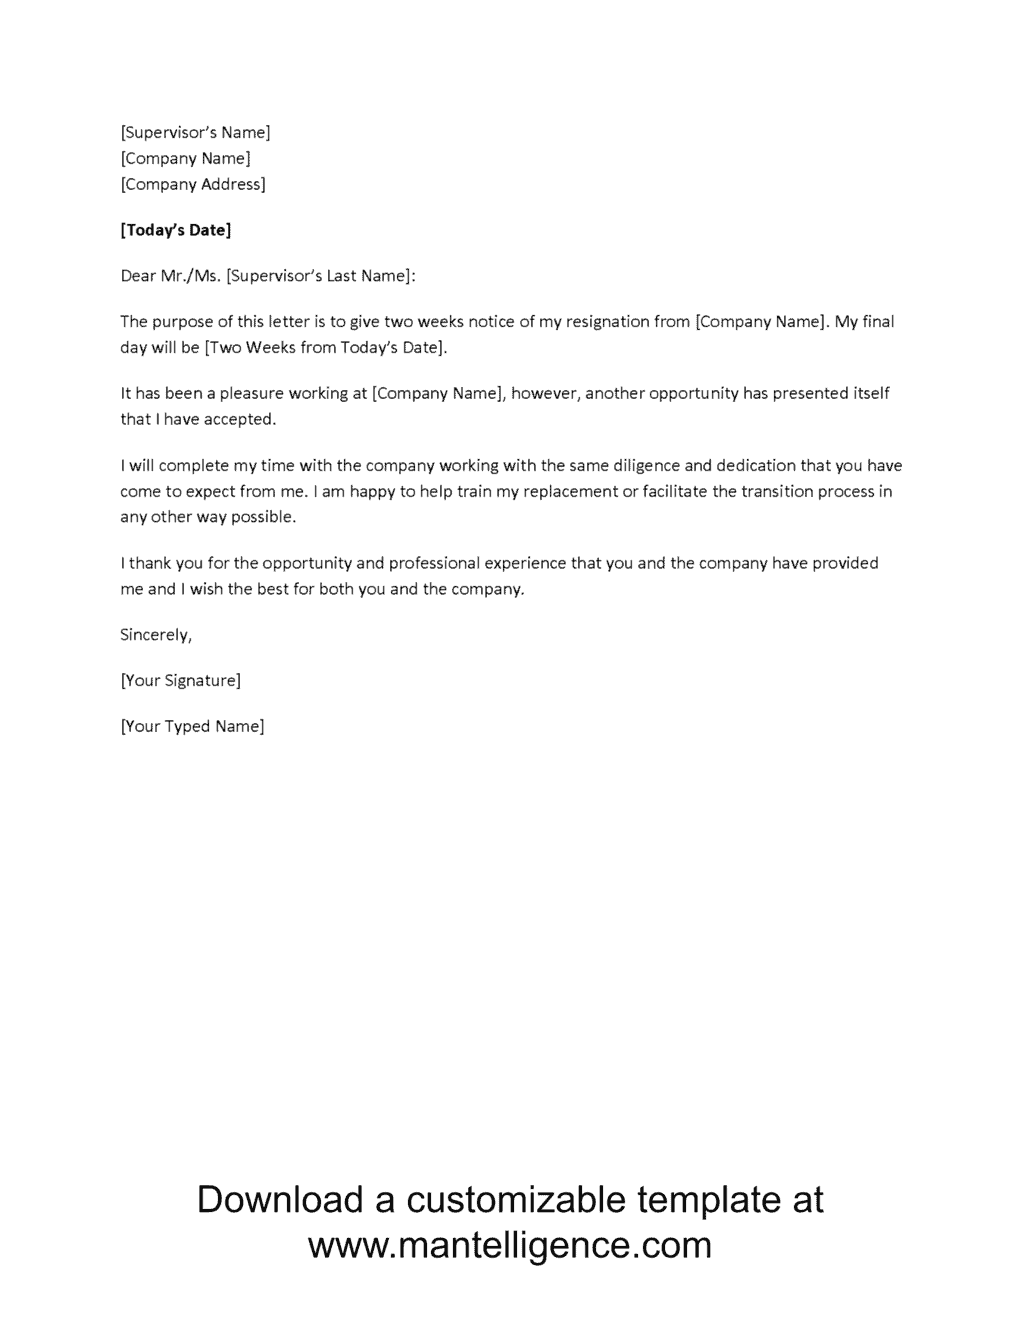 3 highly professional two weeks notice letter templates for Written notice letter template